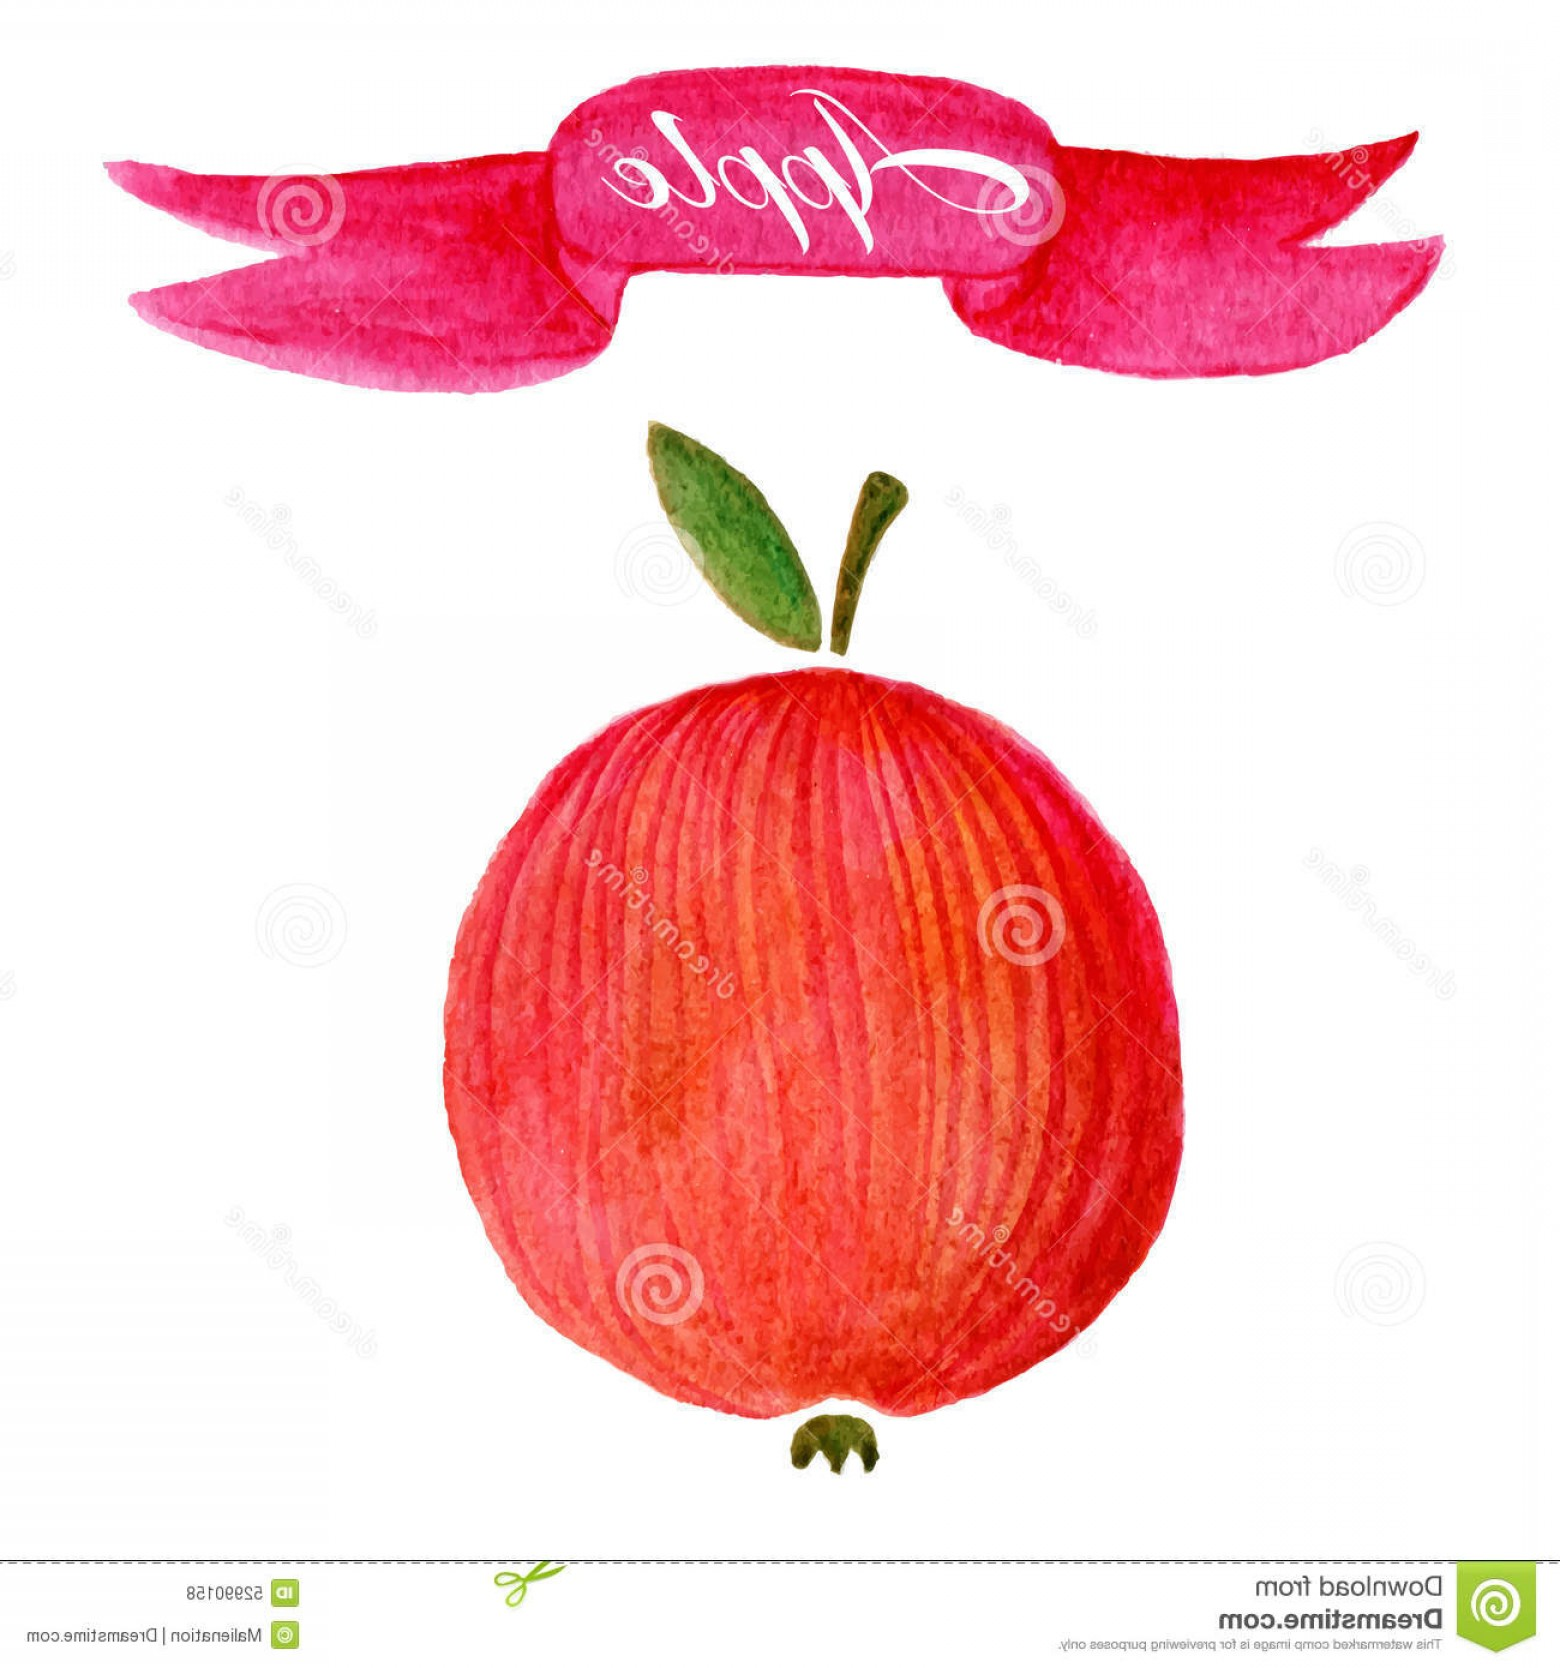 Red Apple Vector Logo: Stock Illustration Red Apple Logo Design Template Food Fruit Icon Watercolor Watercolor Vector Healthy Image